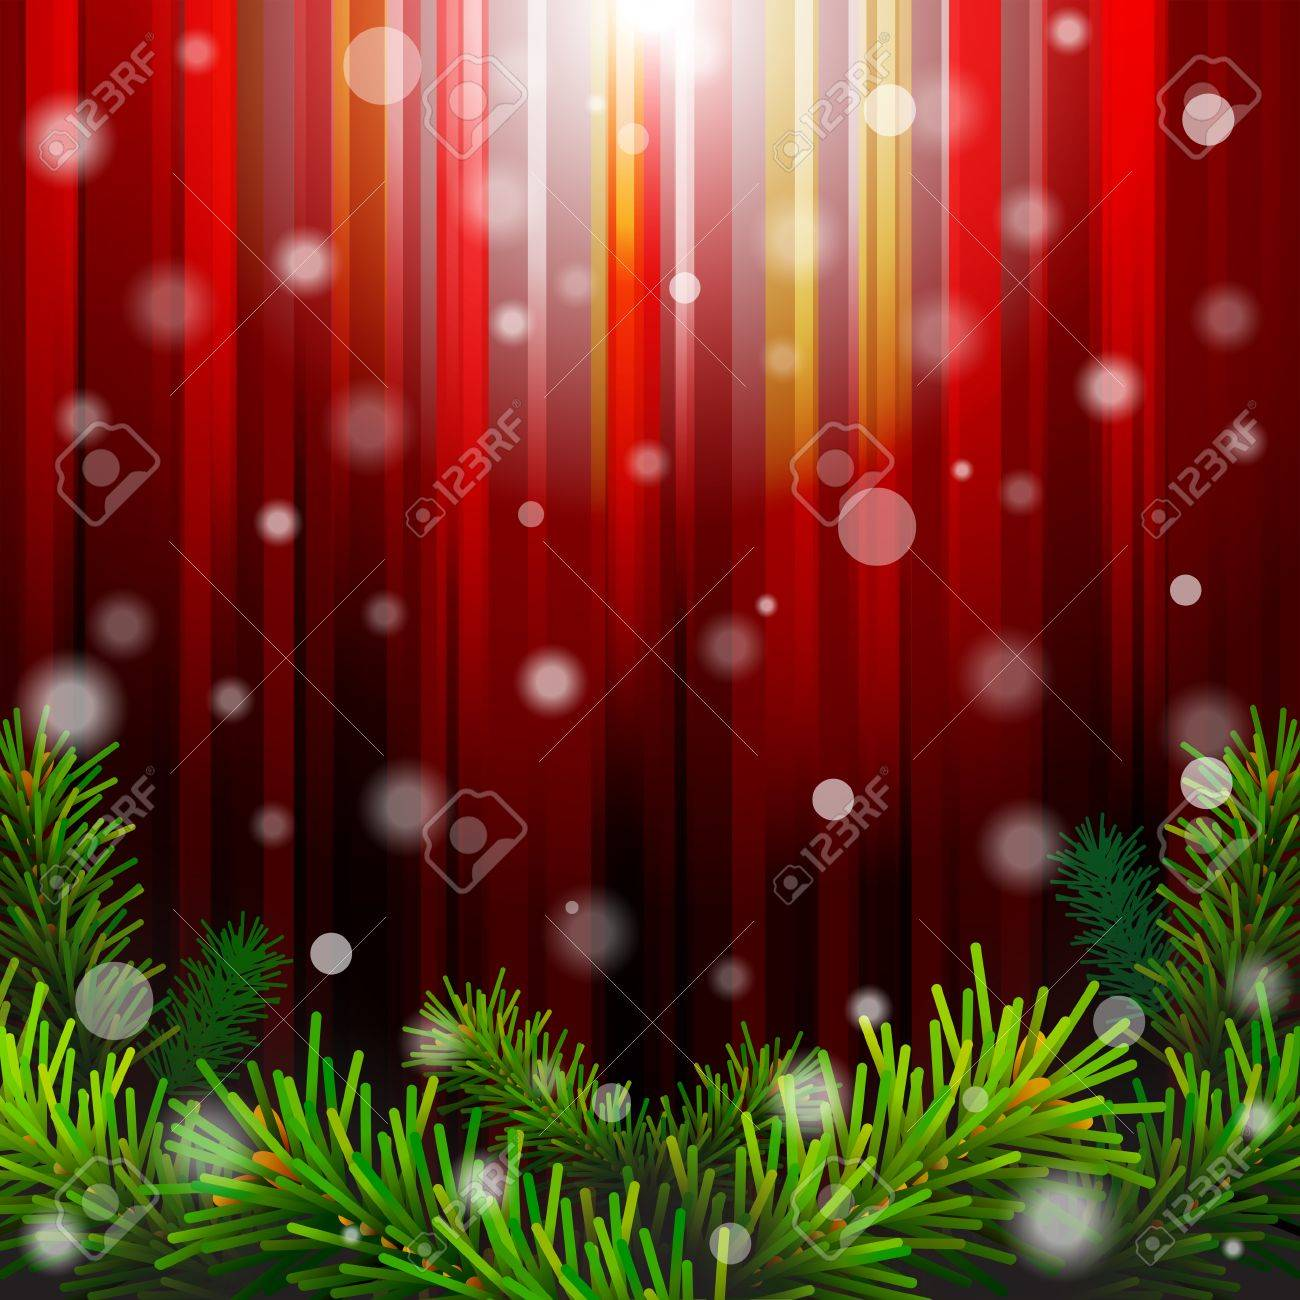 Christmas Red Background With Pine Branches Against Lighting ...